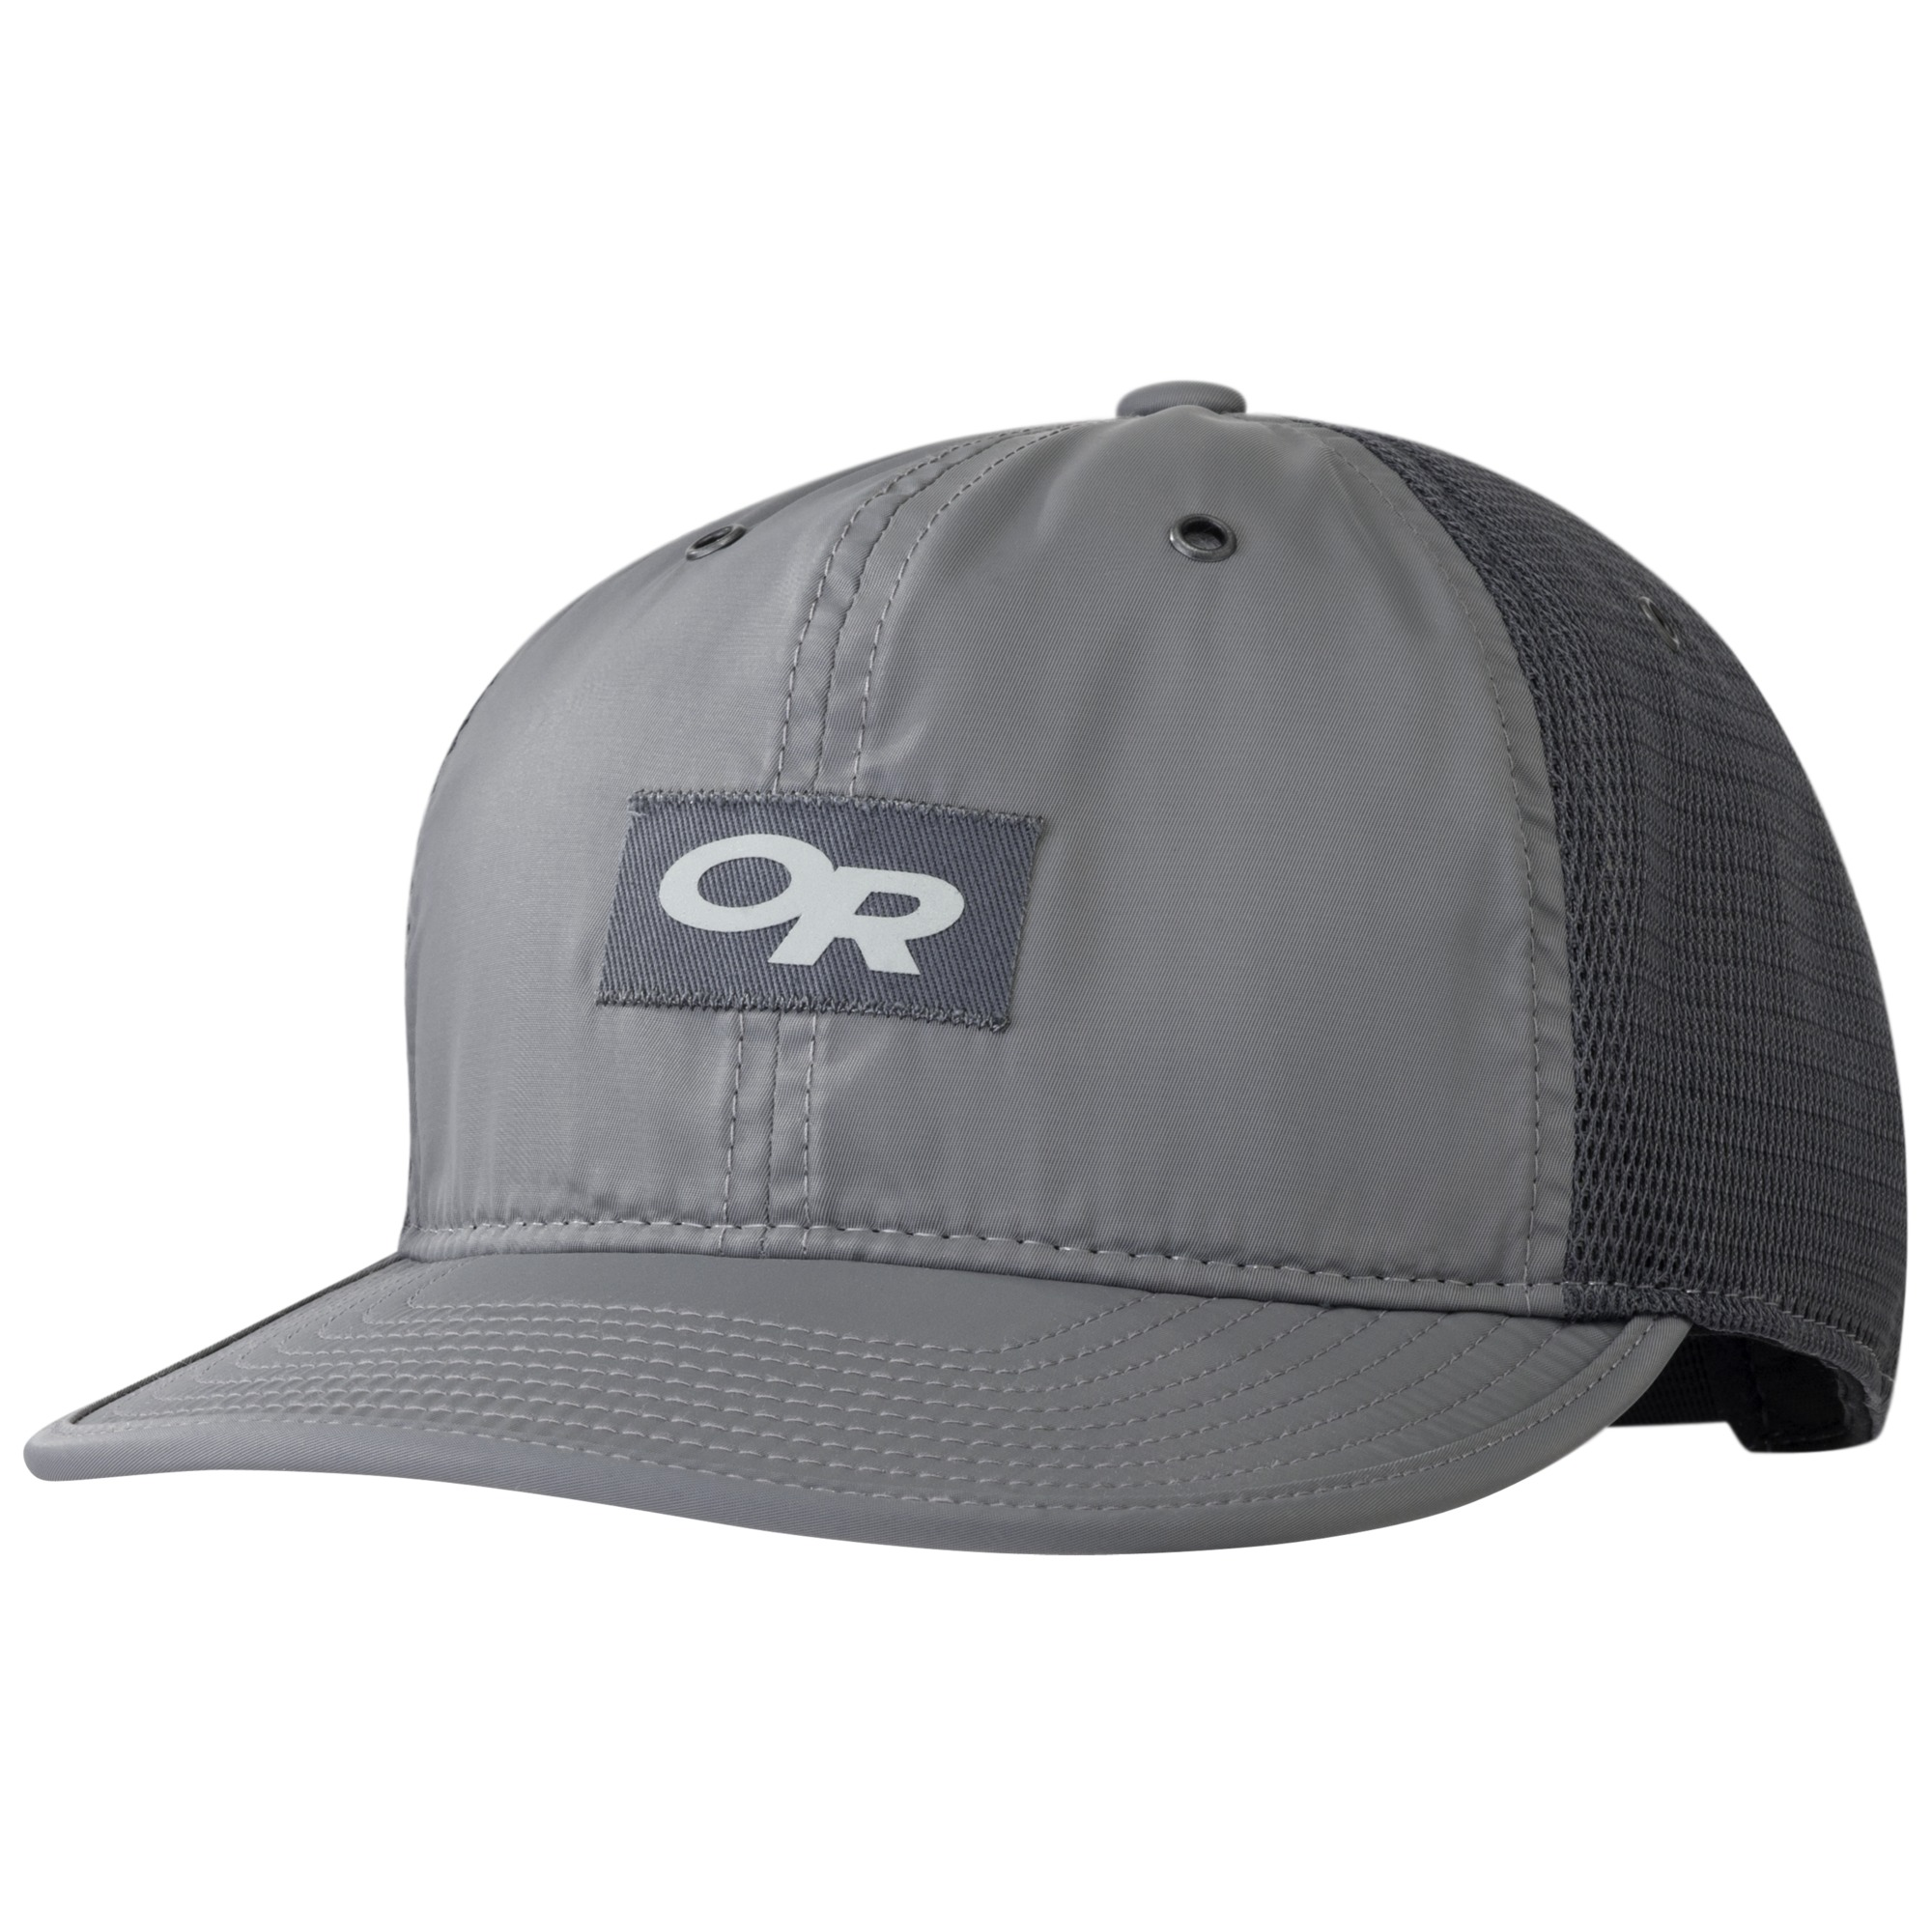 6b1c1c72f7090 Performance Trucker - Trail - pewter